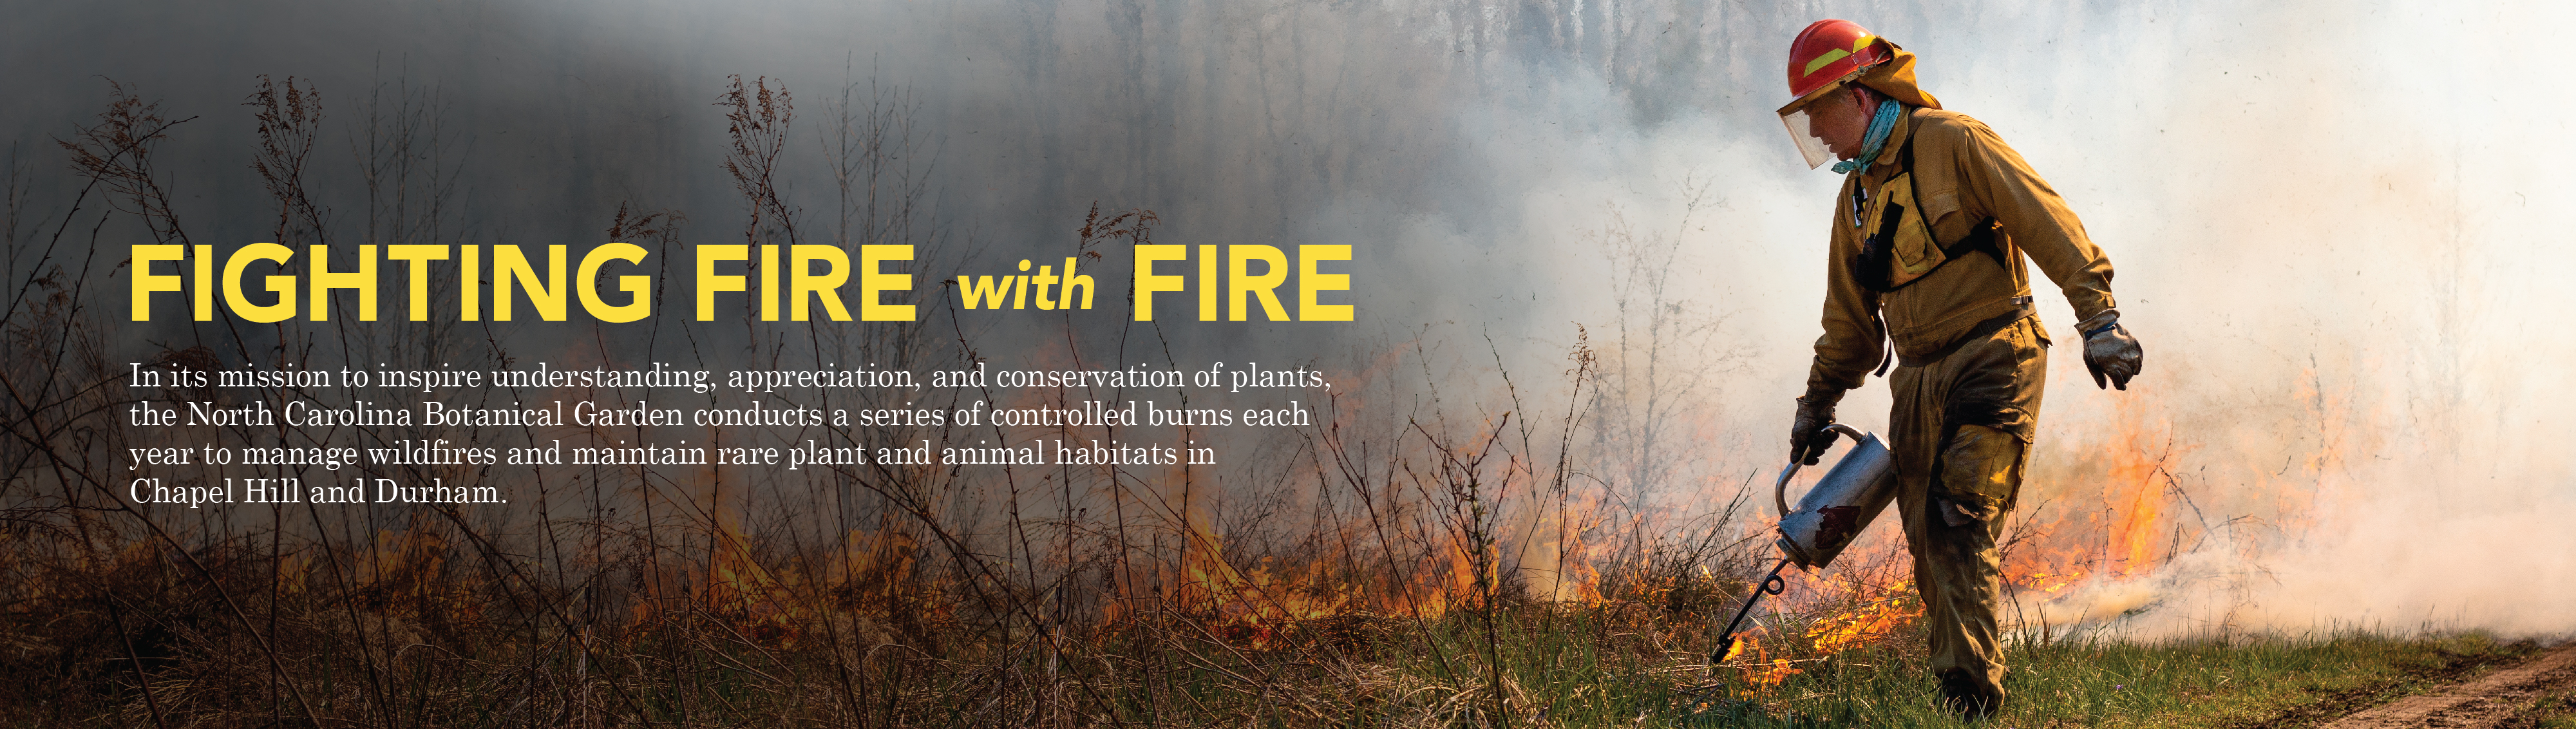 "Feature banner for: Fighting Fire with Fire. "" In its mission to inspire understanding, appreciation, and conservation of plants, the North Carolina Botanical Garden conducts a series of controlled burns each year to manage wildfires and plant and animal habitats in Chapel Hill and Durham."" Click to read more."